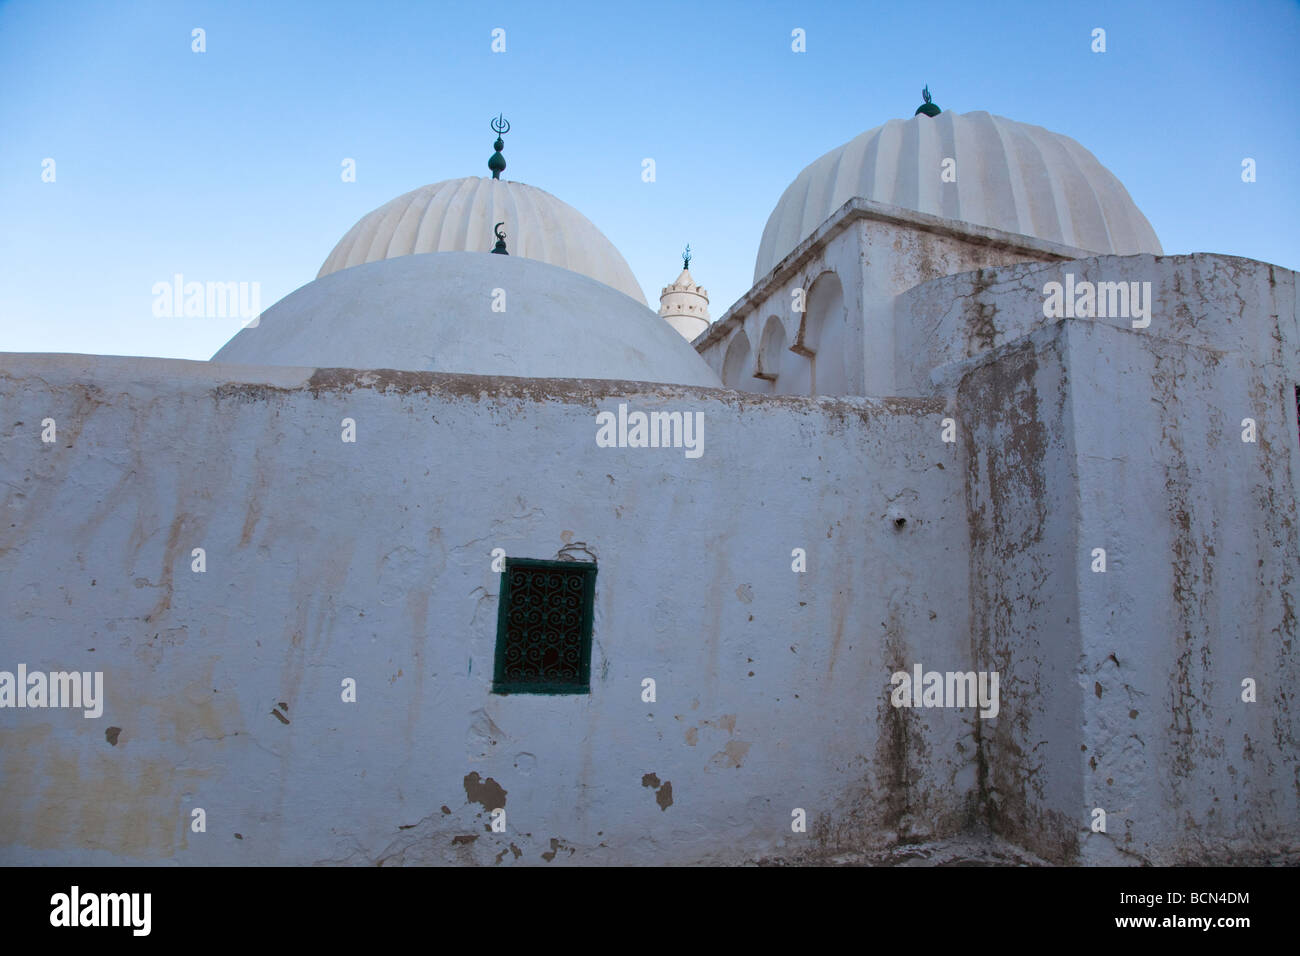 Sidi Bou Makhlouf mosque in El Kef, one of the most underrated tourist destinations in Tunisia Stock Photo